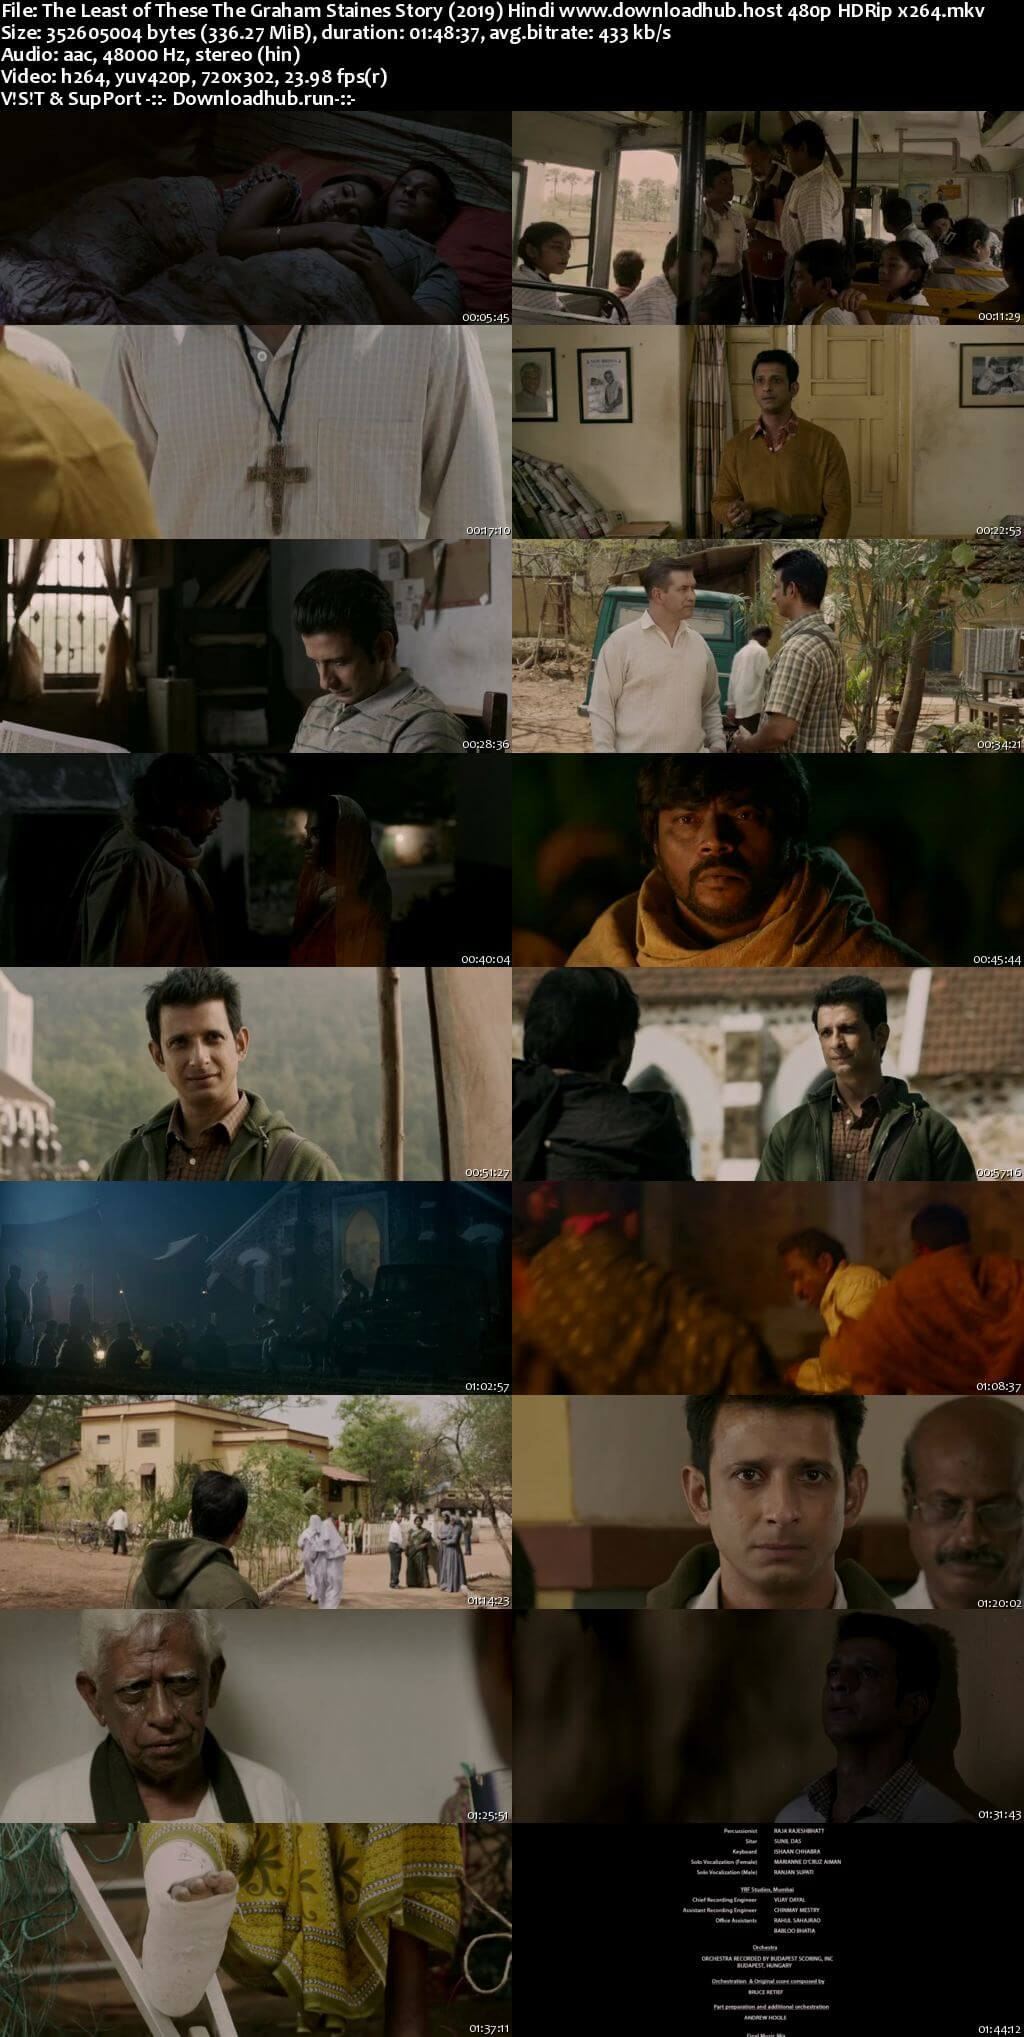 The Least of These The Graham Staines Story 2019 Hindi 300MB HDRip 480p